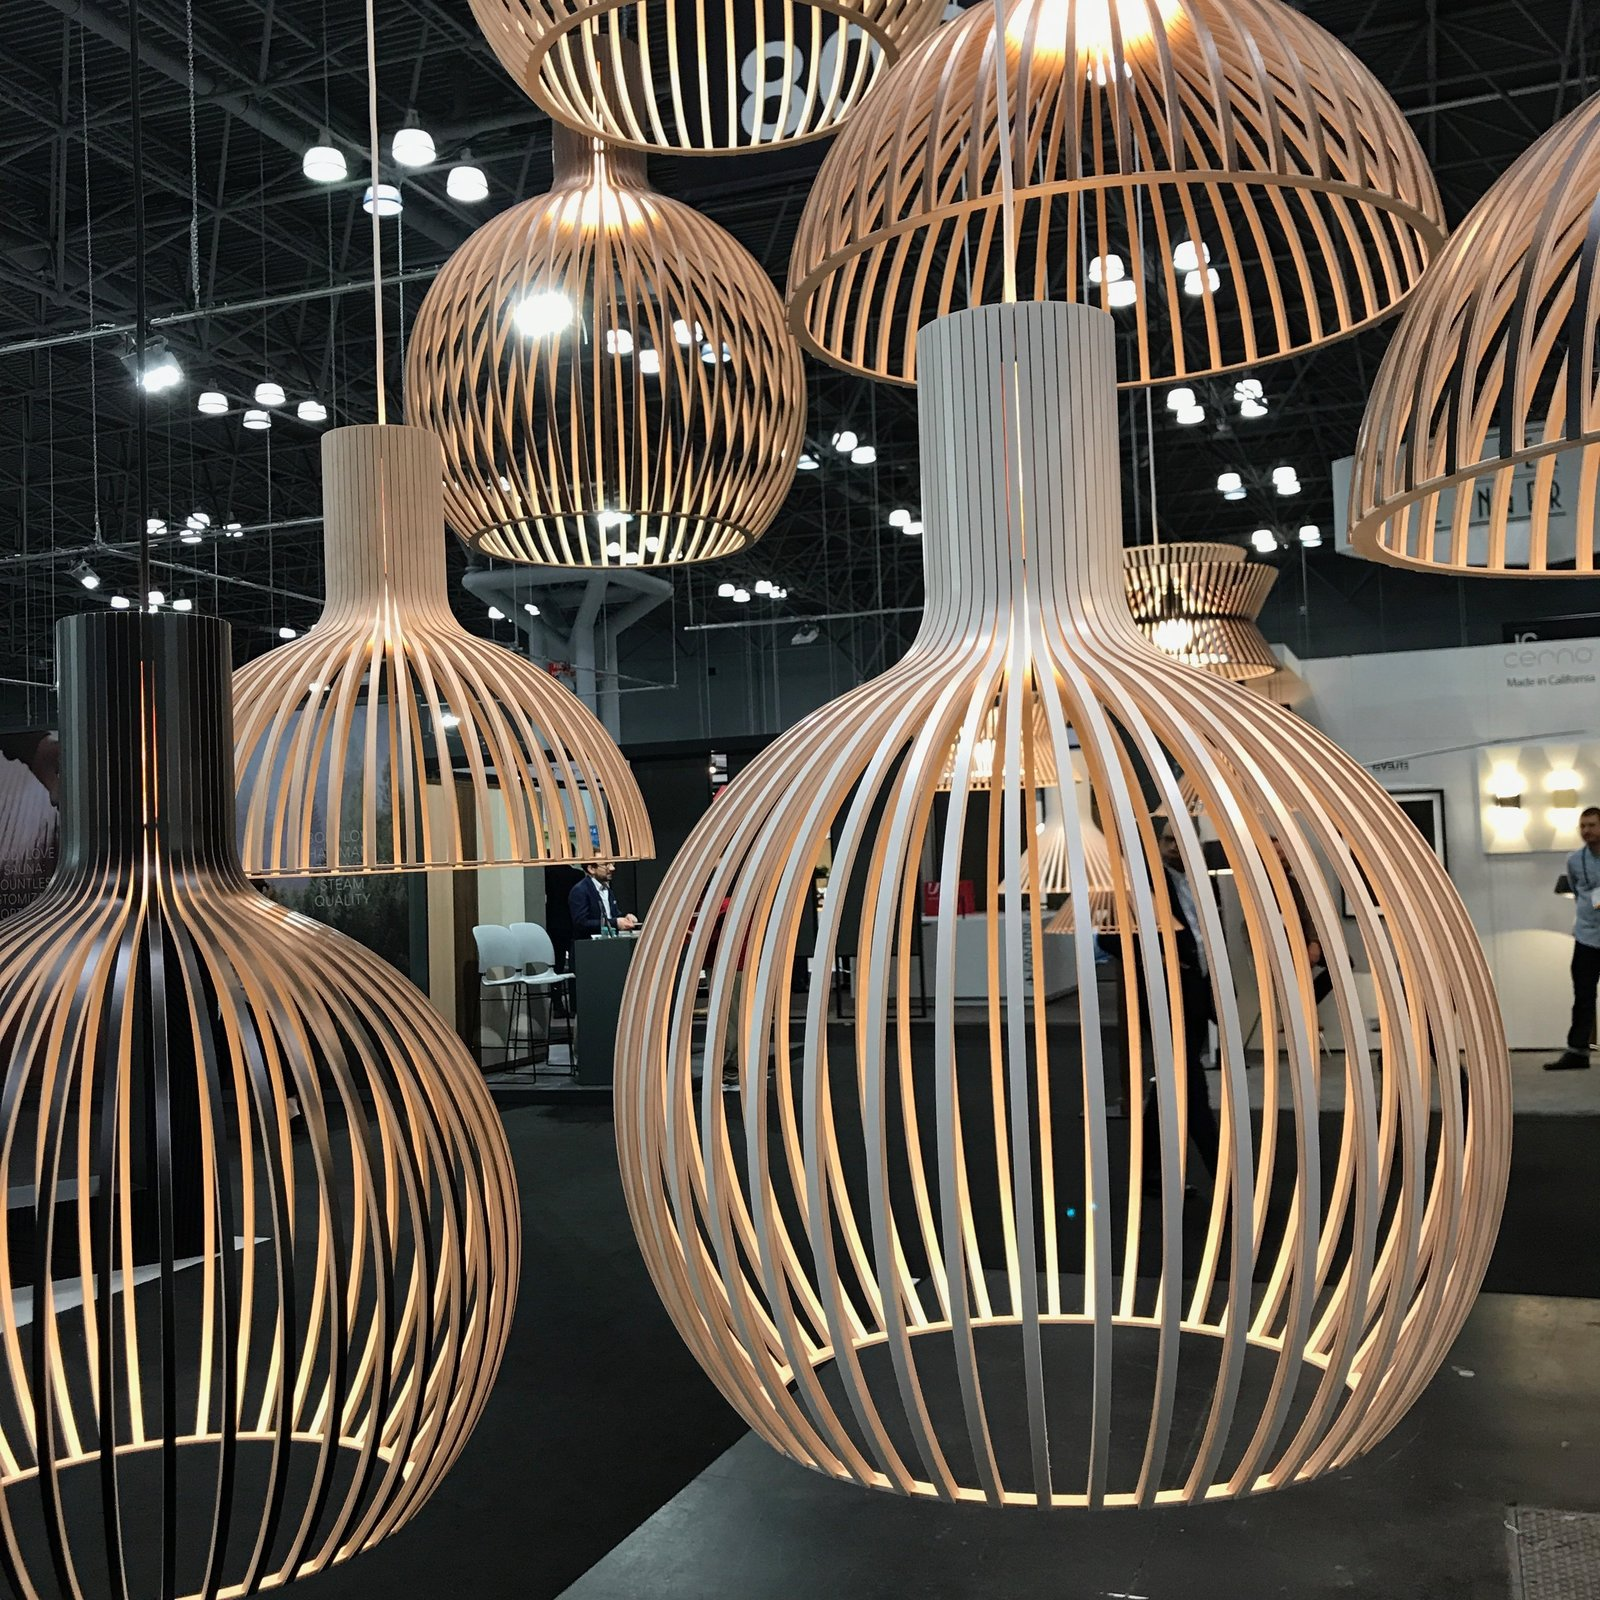 We were happy to see the US reintroduction of Secto Design's line of handcrafted Finnish lighting pieces made of Scandinavian birch. As of this week, the pieces will be stocked and distributed throughout the US via a Wisconsin warehouse. The entire collection is designed by Finnish architect Seppo Koho.  Photo 13 of 36 in The Best of New York Design Week 2017